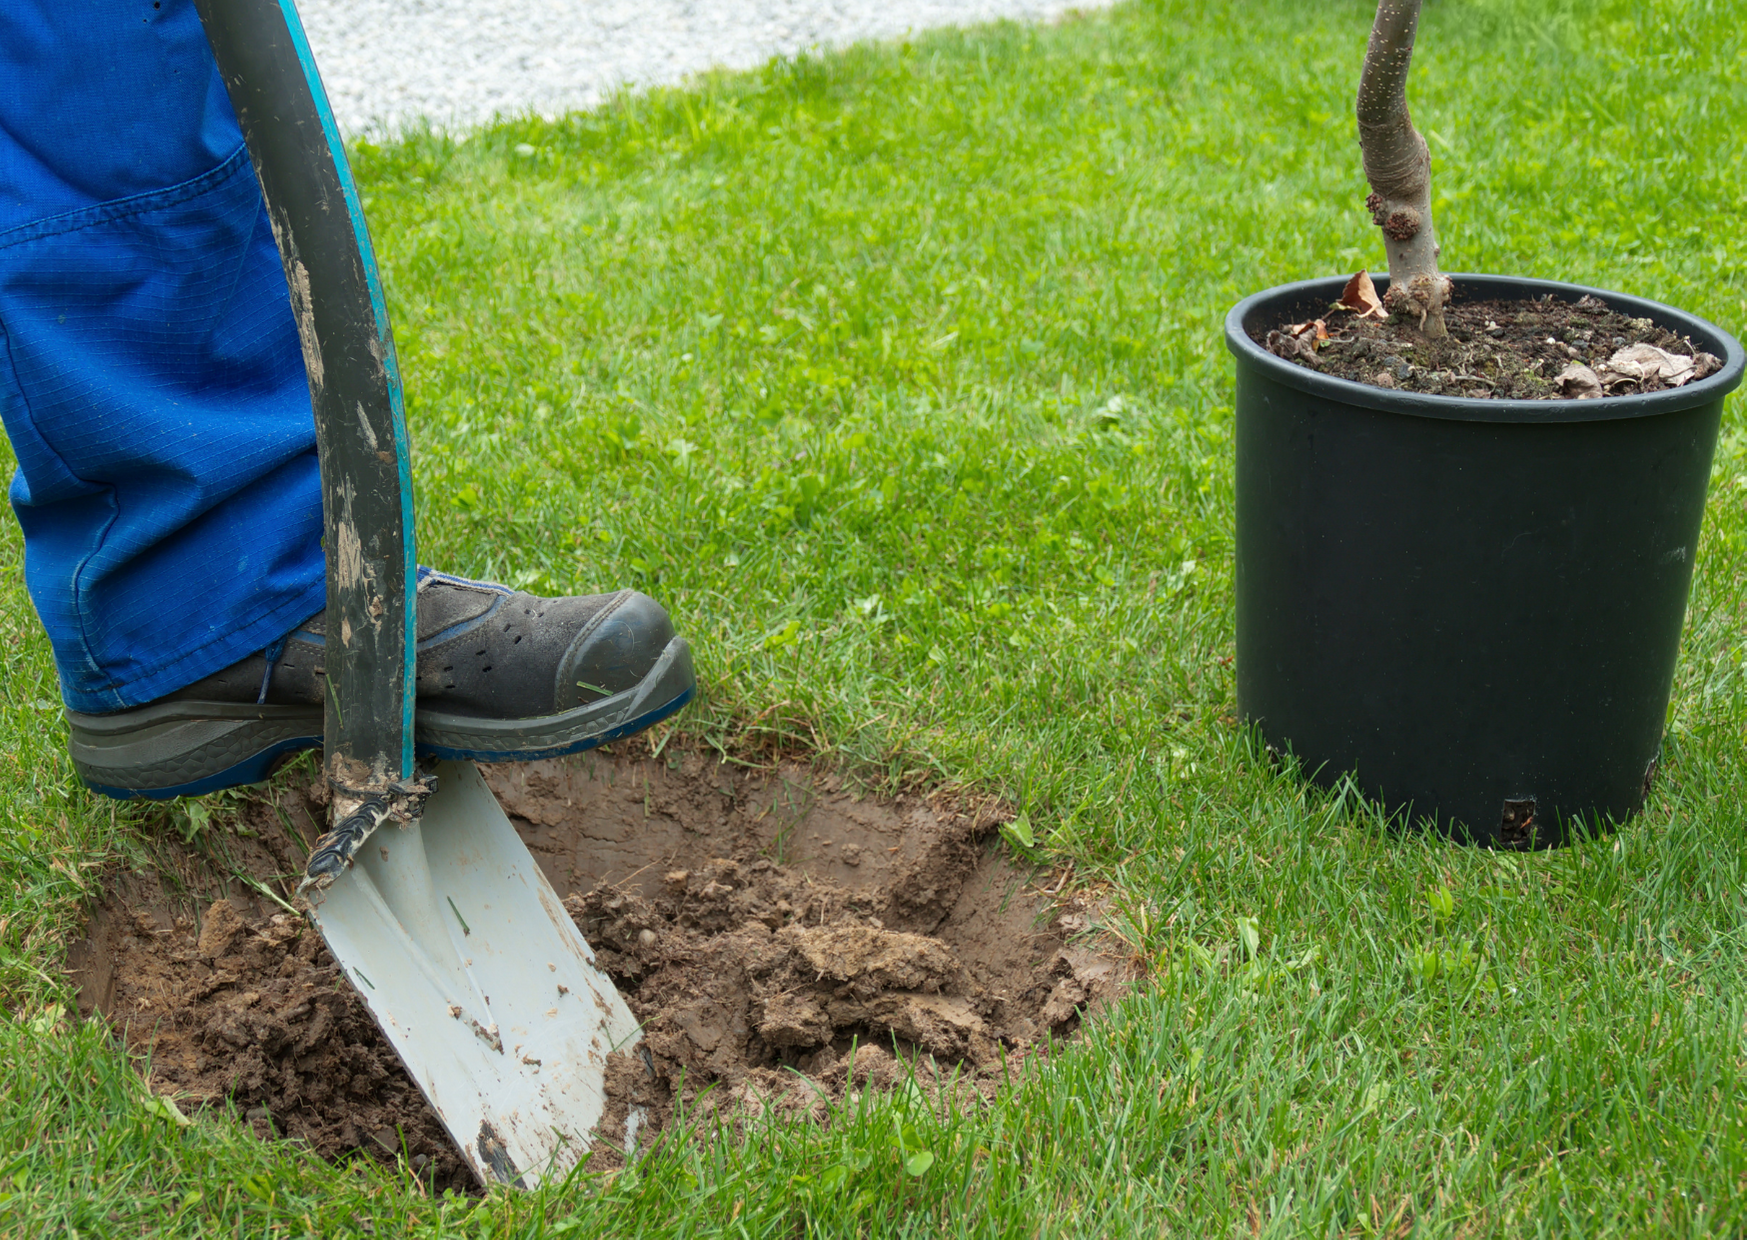 Digging Small Holes for Plants